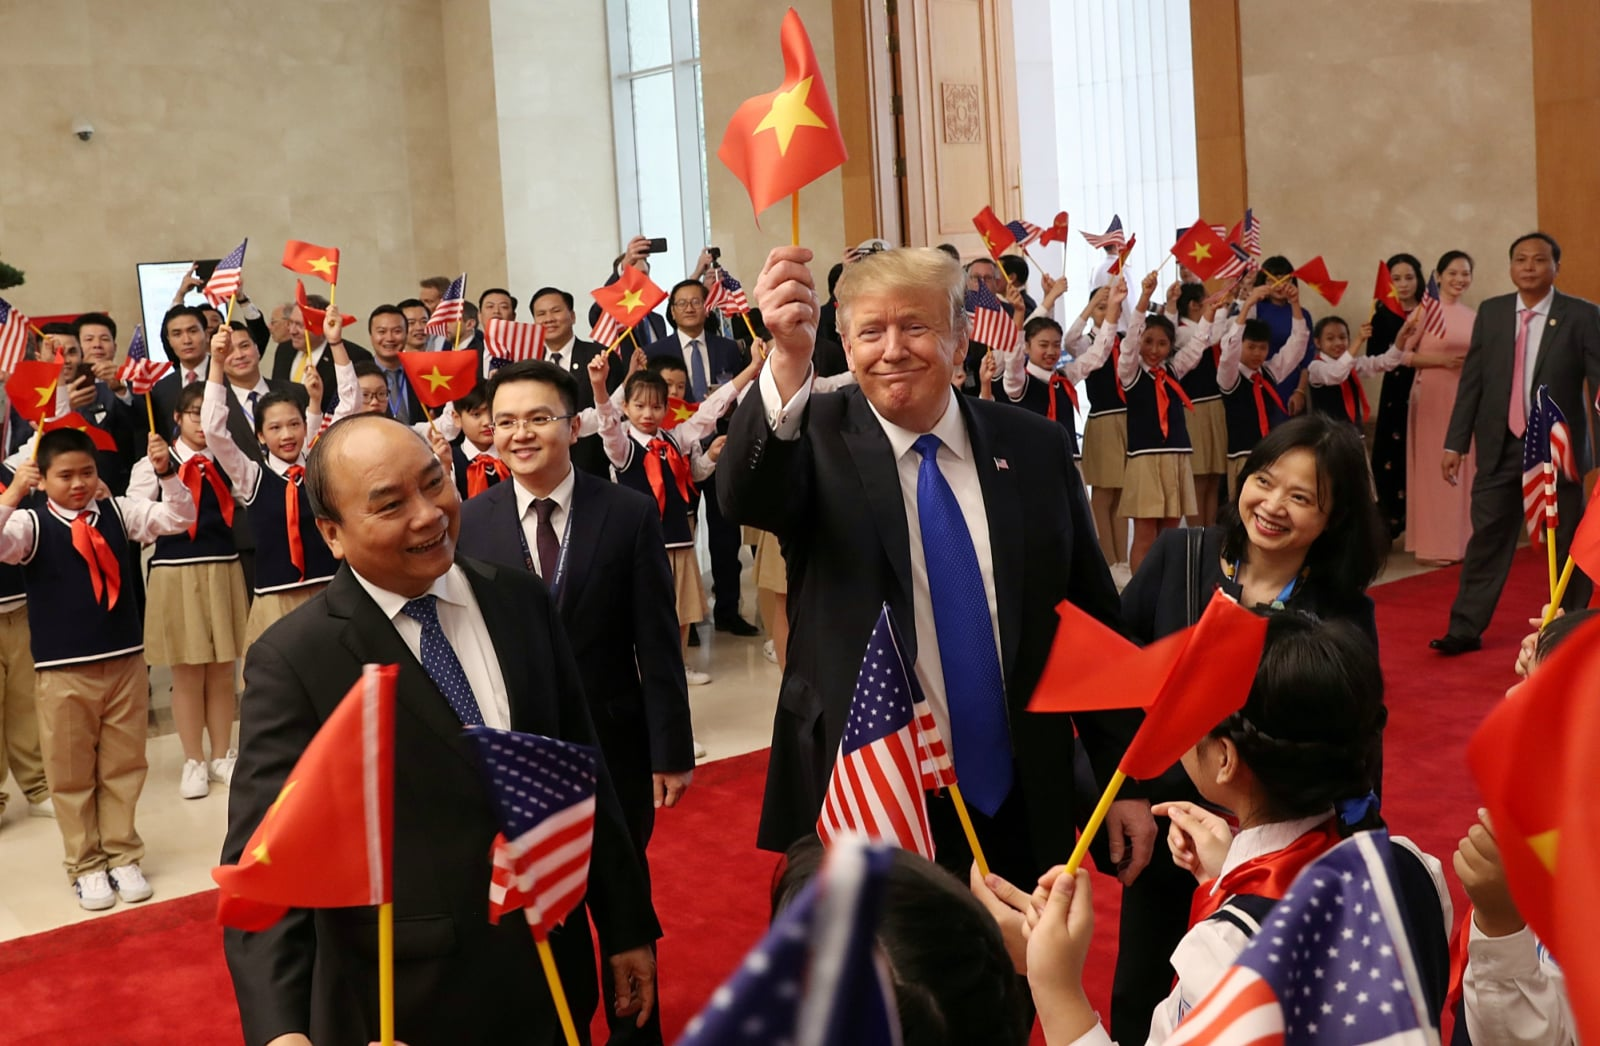 US President Donald Trump waves a Vietnamese flag as he is greeted by students during a meeting with Vietnamese Prime Minister Nguyen Xuan Phuc at the Office of Government Hall in Hanoi, Vietnam, February 27, 2019. REUTERS/Leah Millis